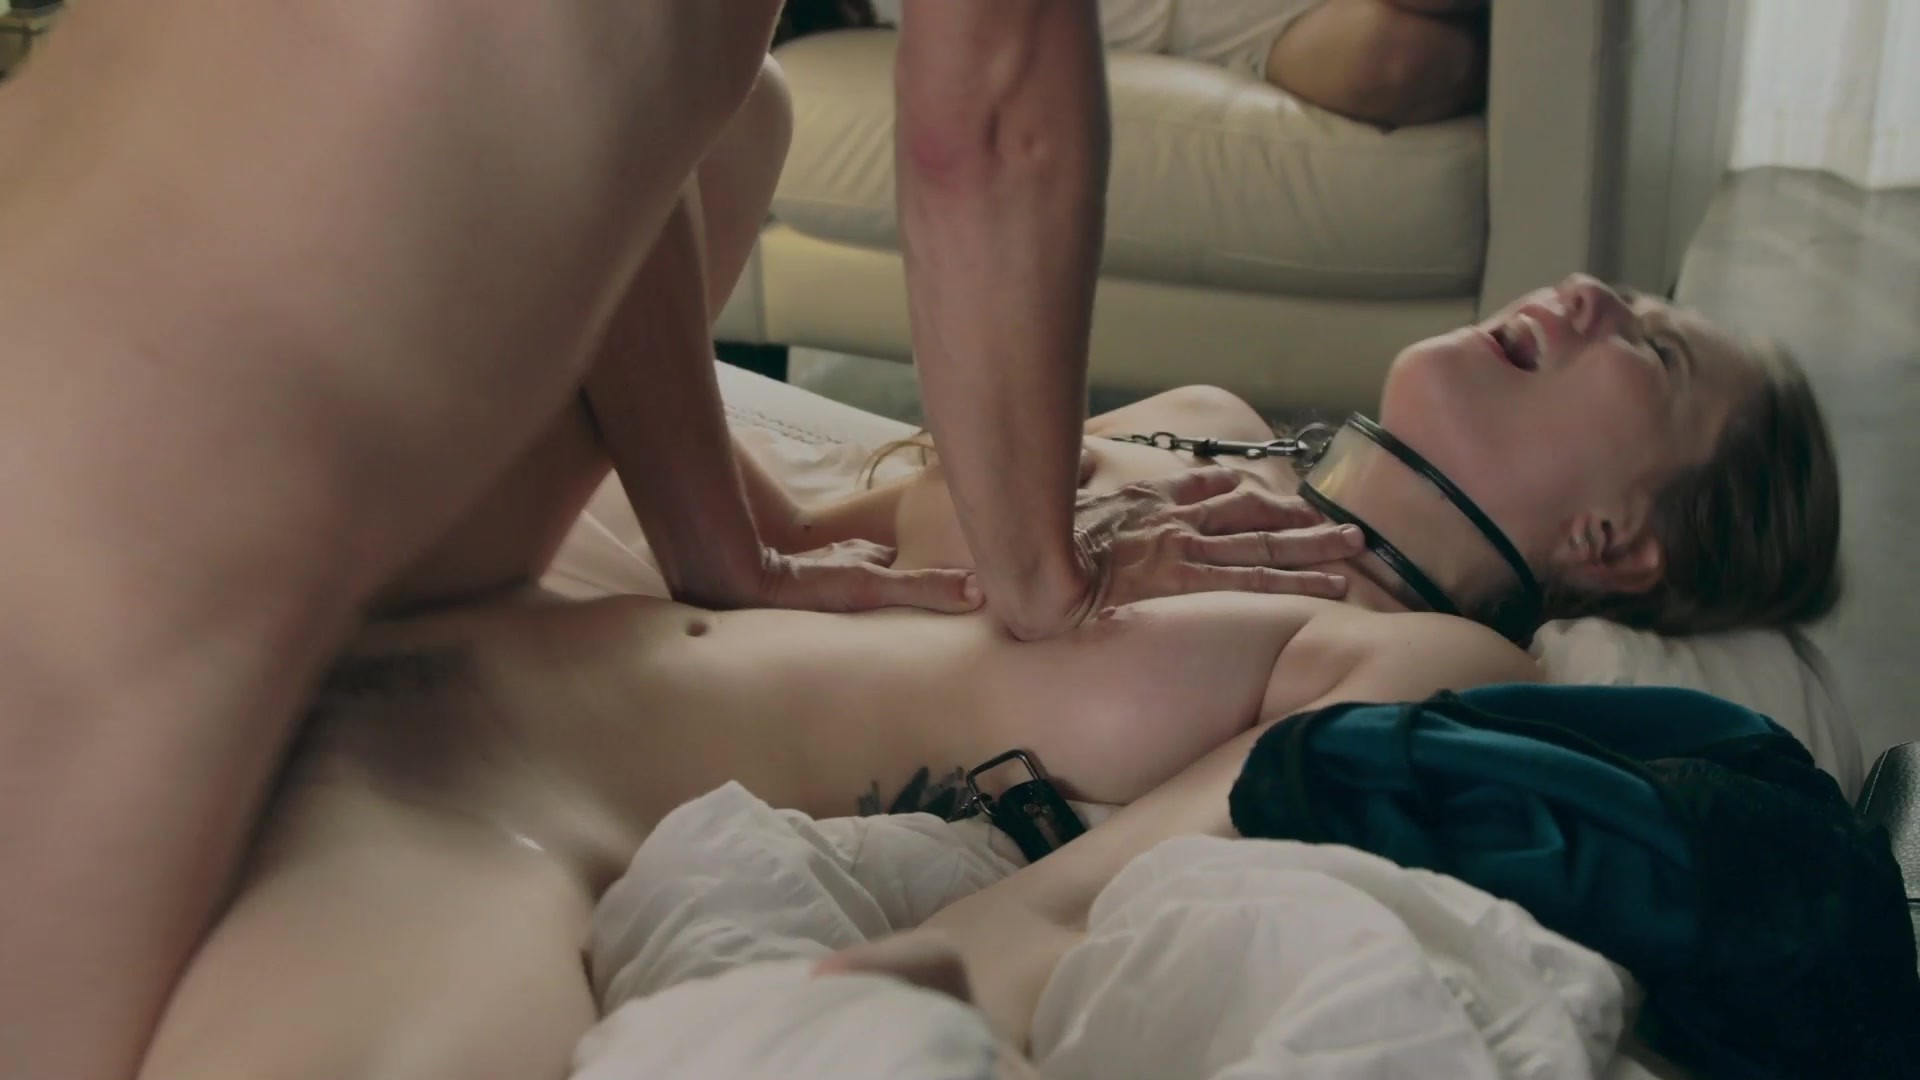 Scene with Richie Calhoun and Samantha Hayes - image 15 out of 20